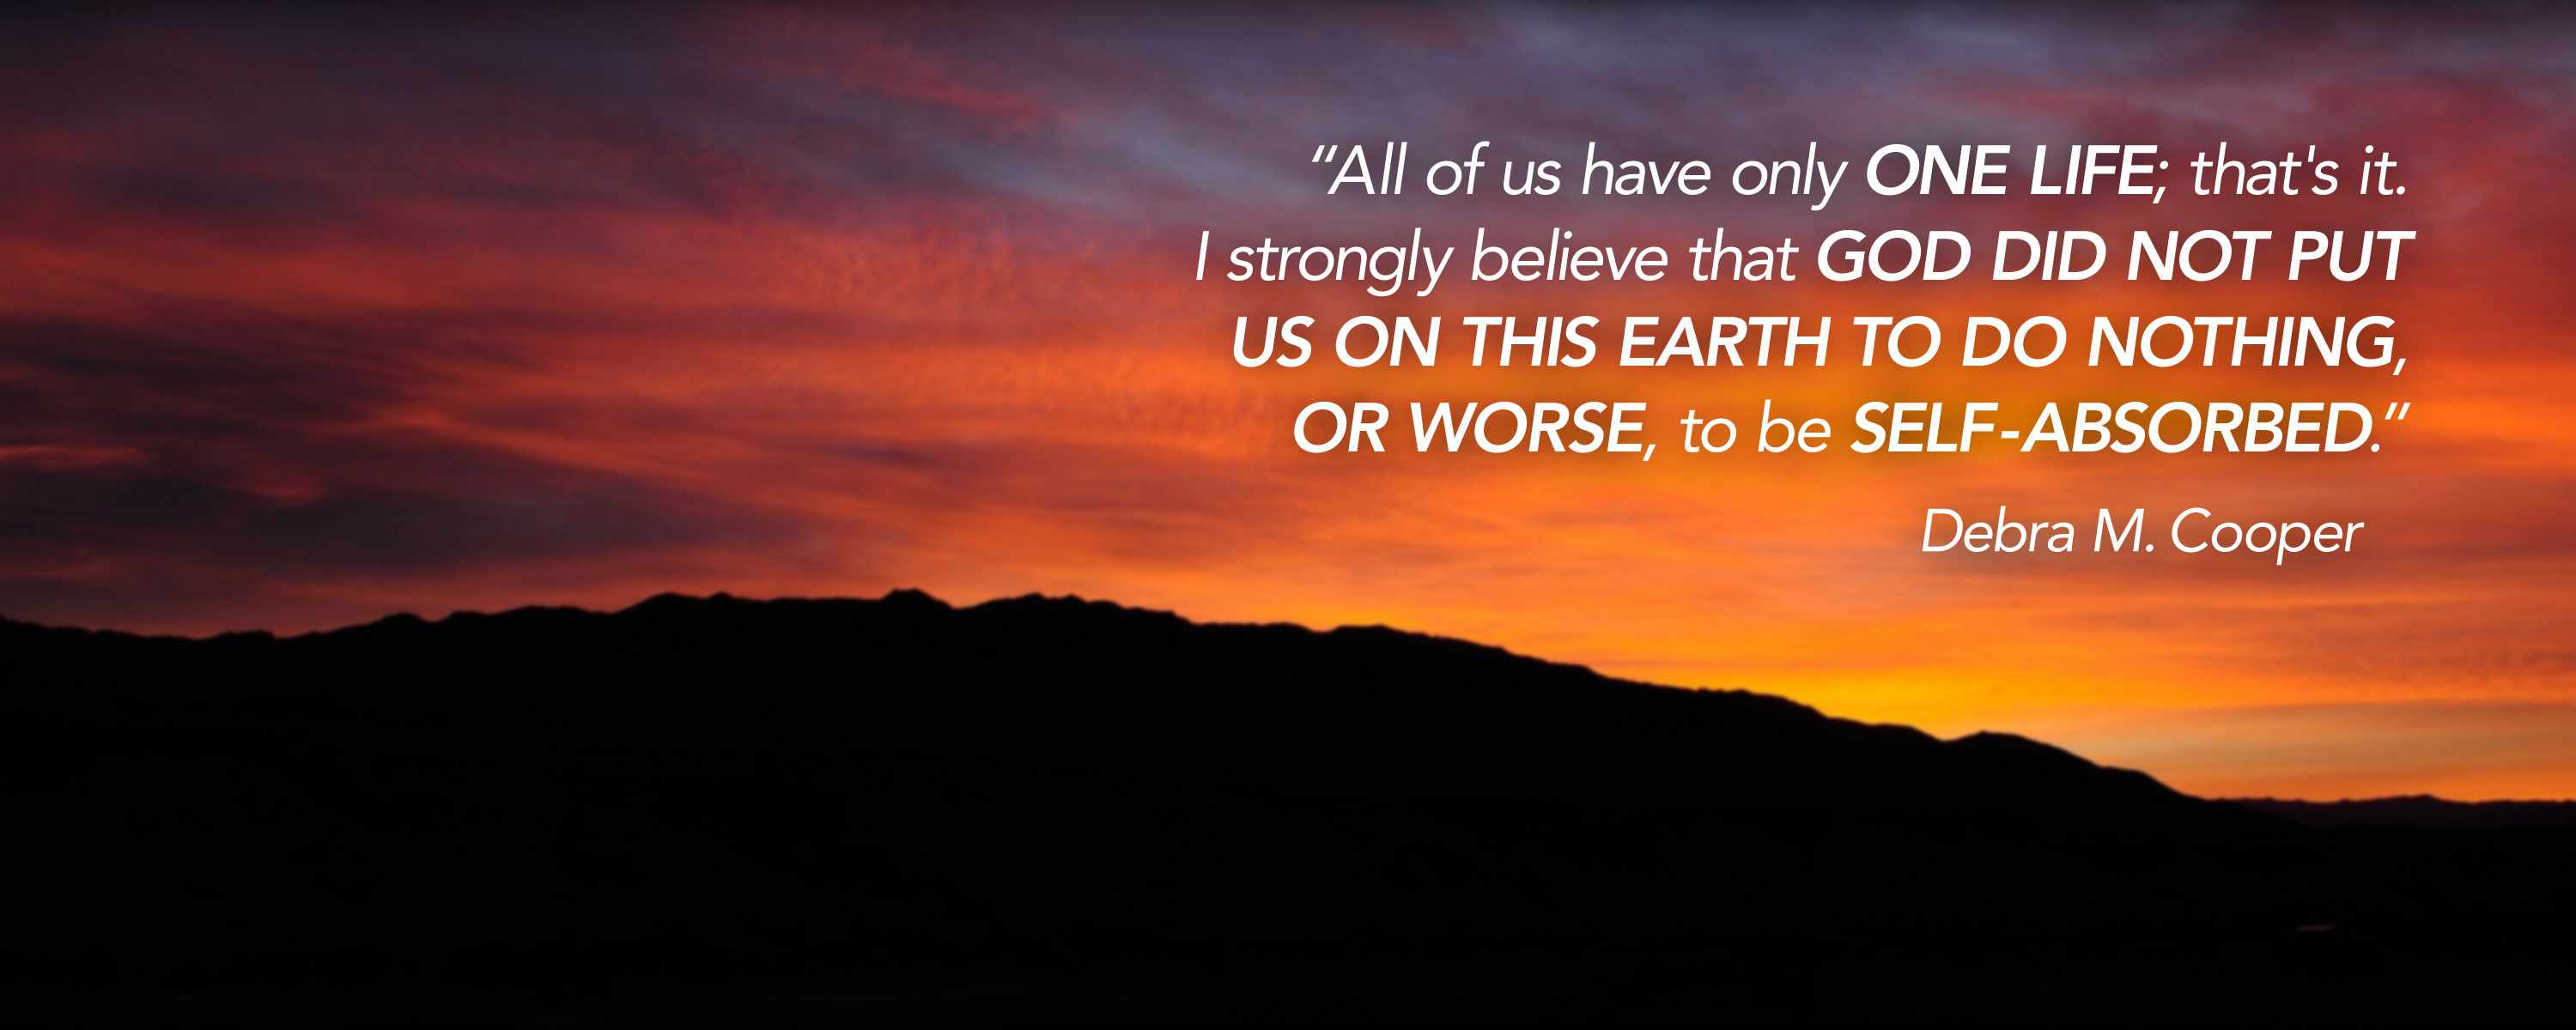 Beautiful Desert Sunset with Debra Cooper quote about life